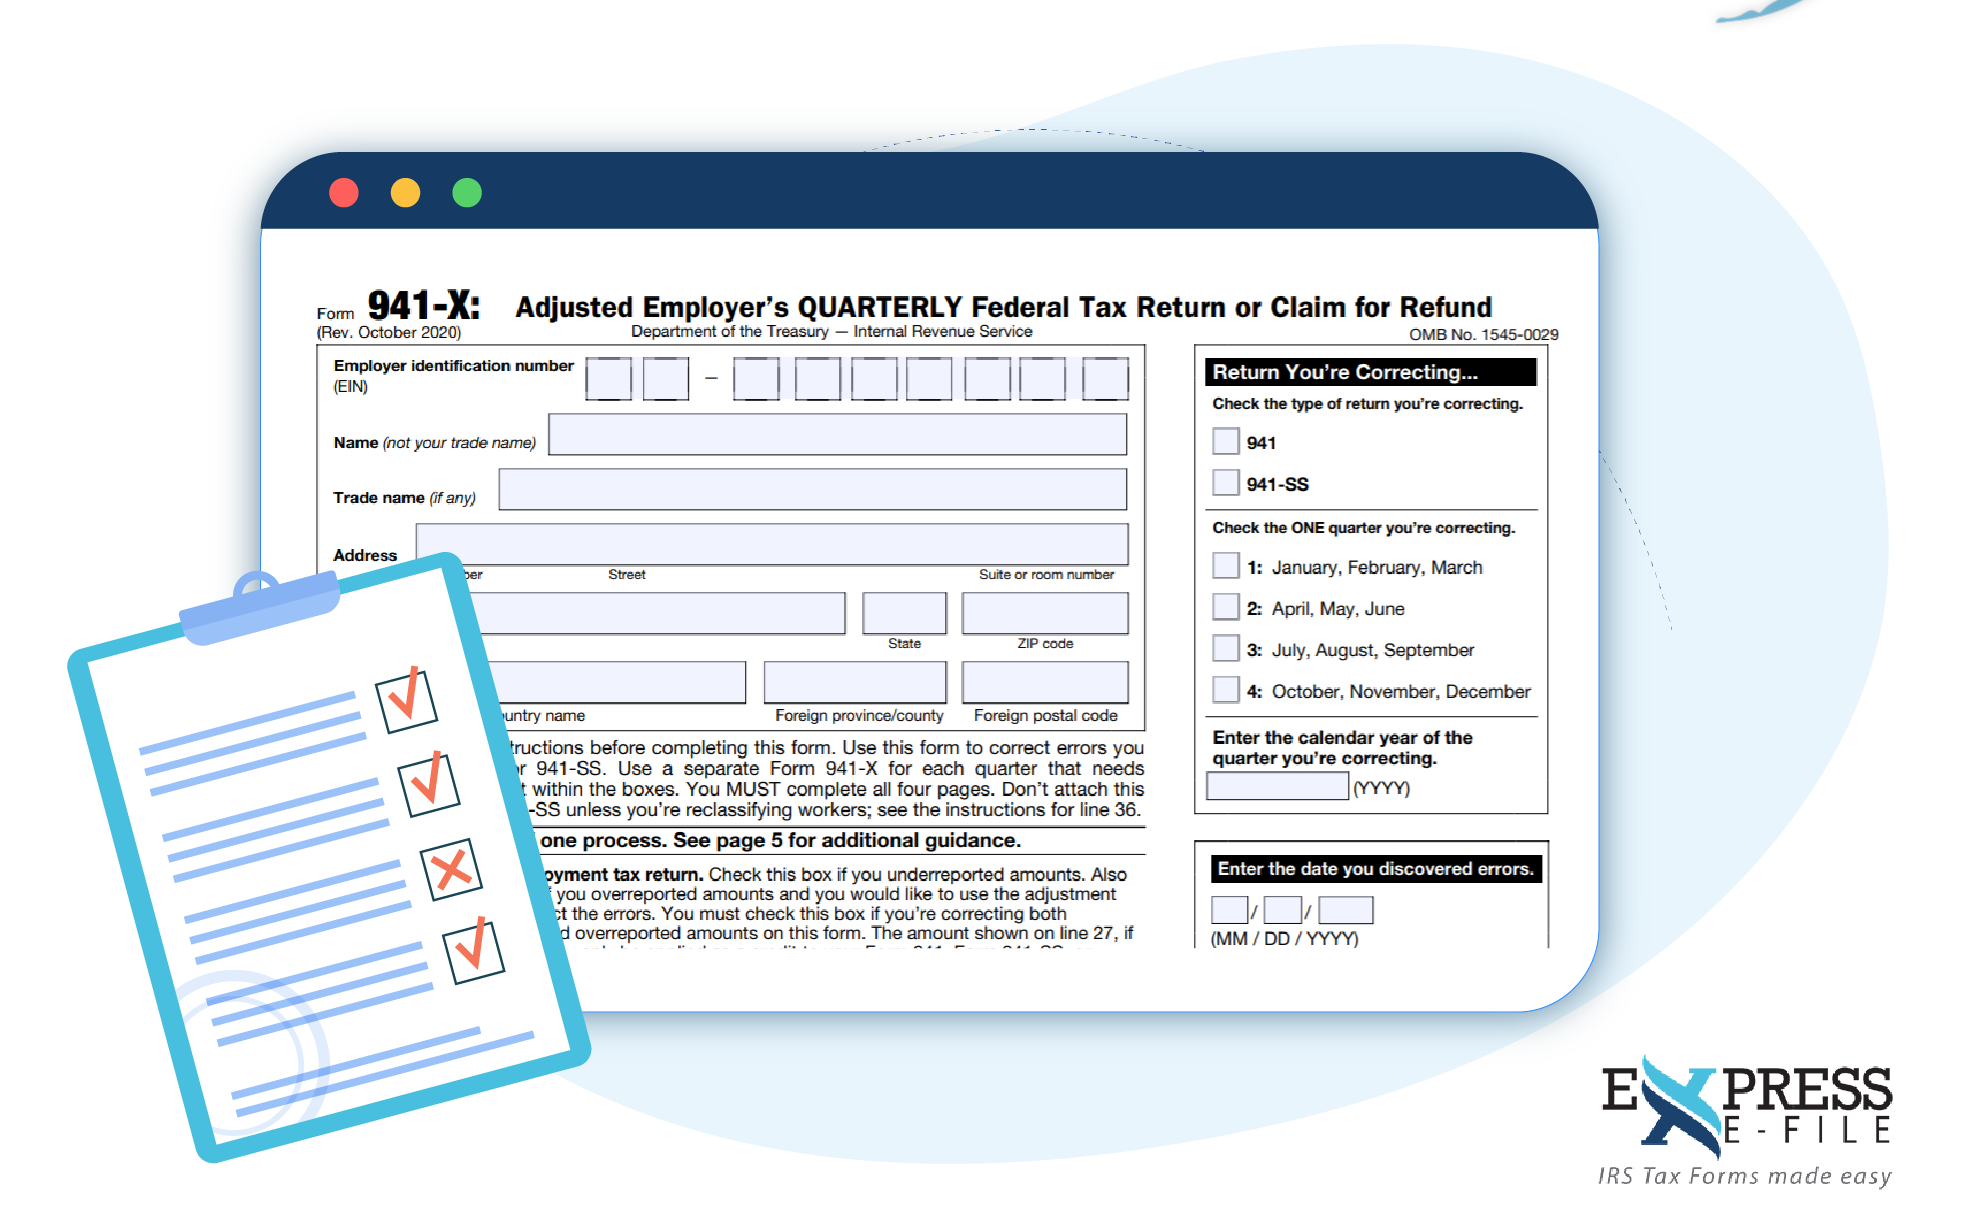 Revised Form 941-X